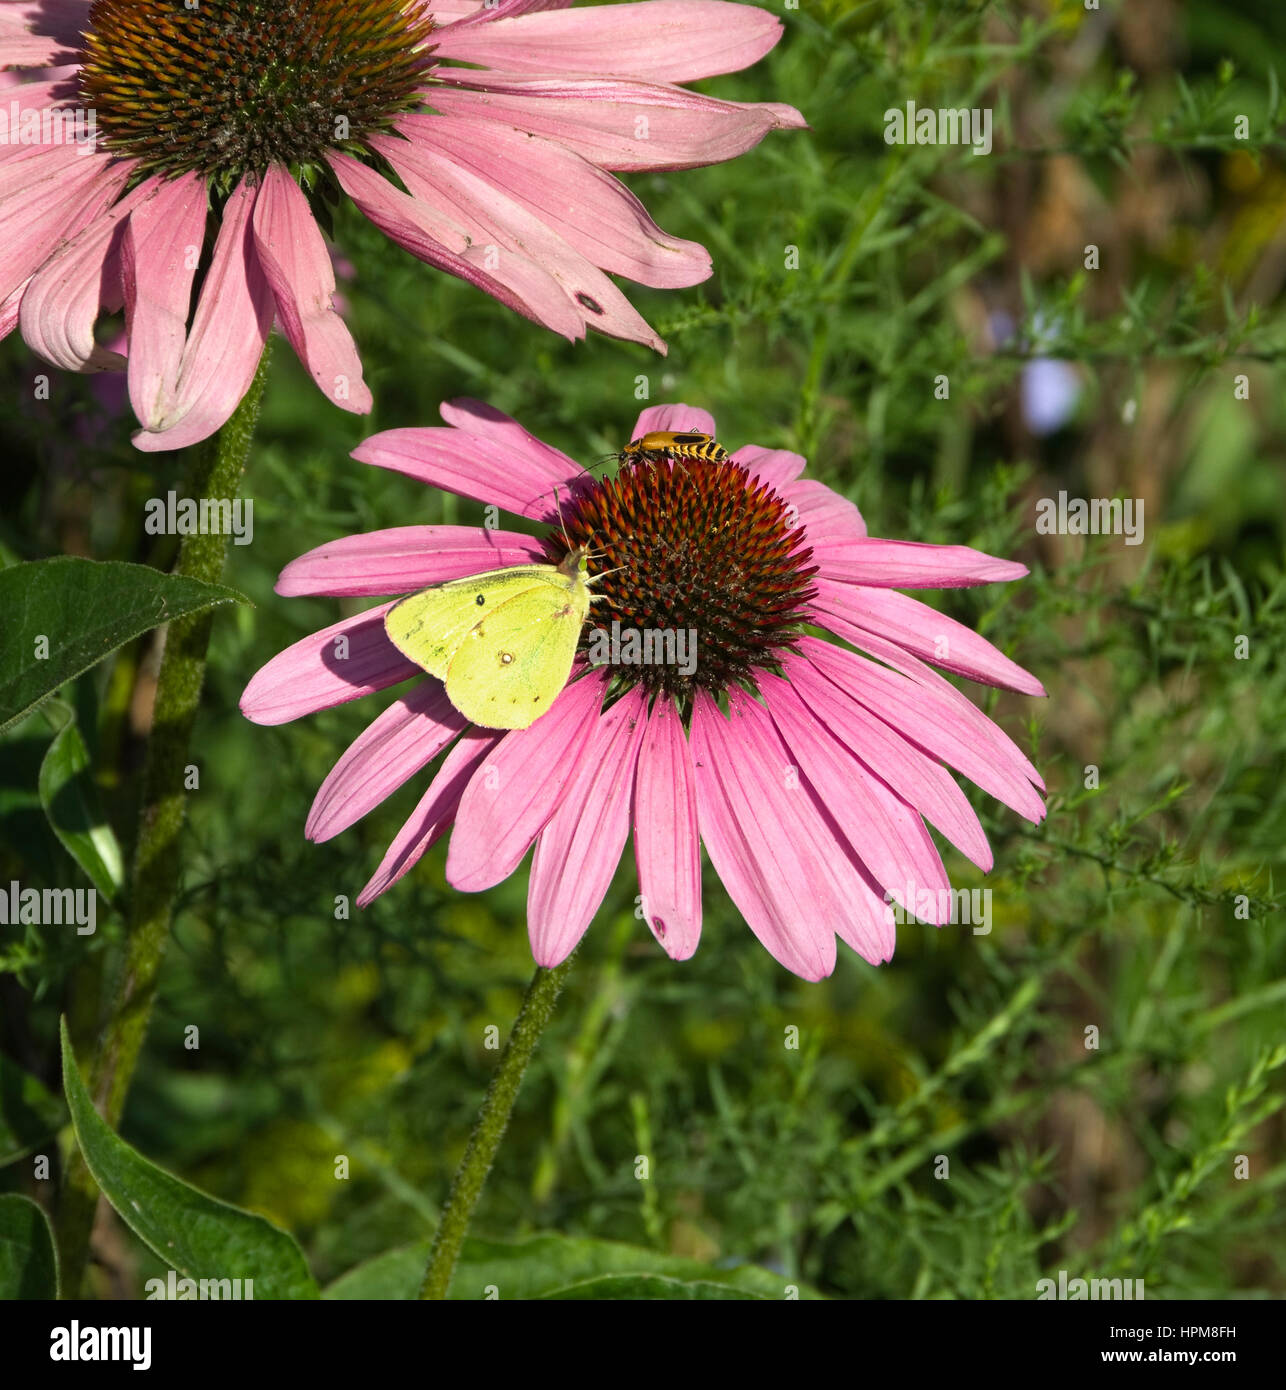 Common Sulfur Butterfly, Colias philodice and Goldenrod Soldier Beetle, Chauliognathus pennsylvanicus on Purple Coneflower Stock Photo